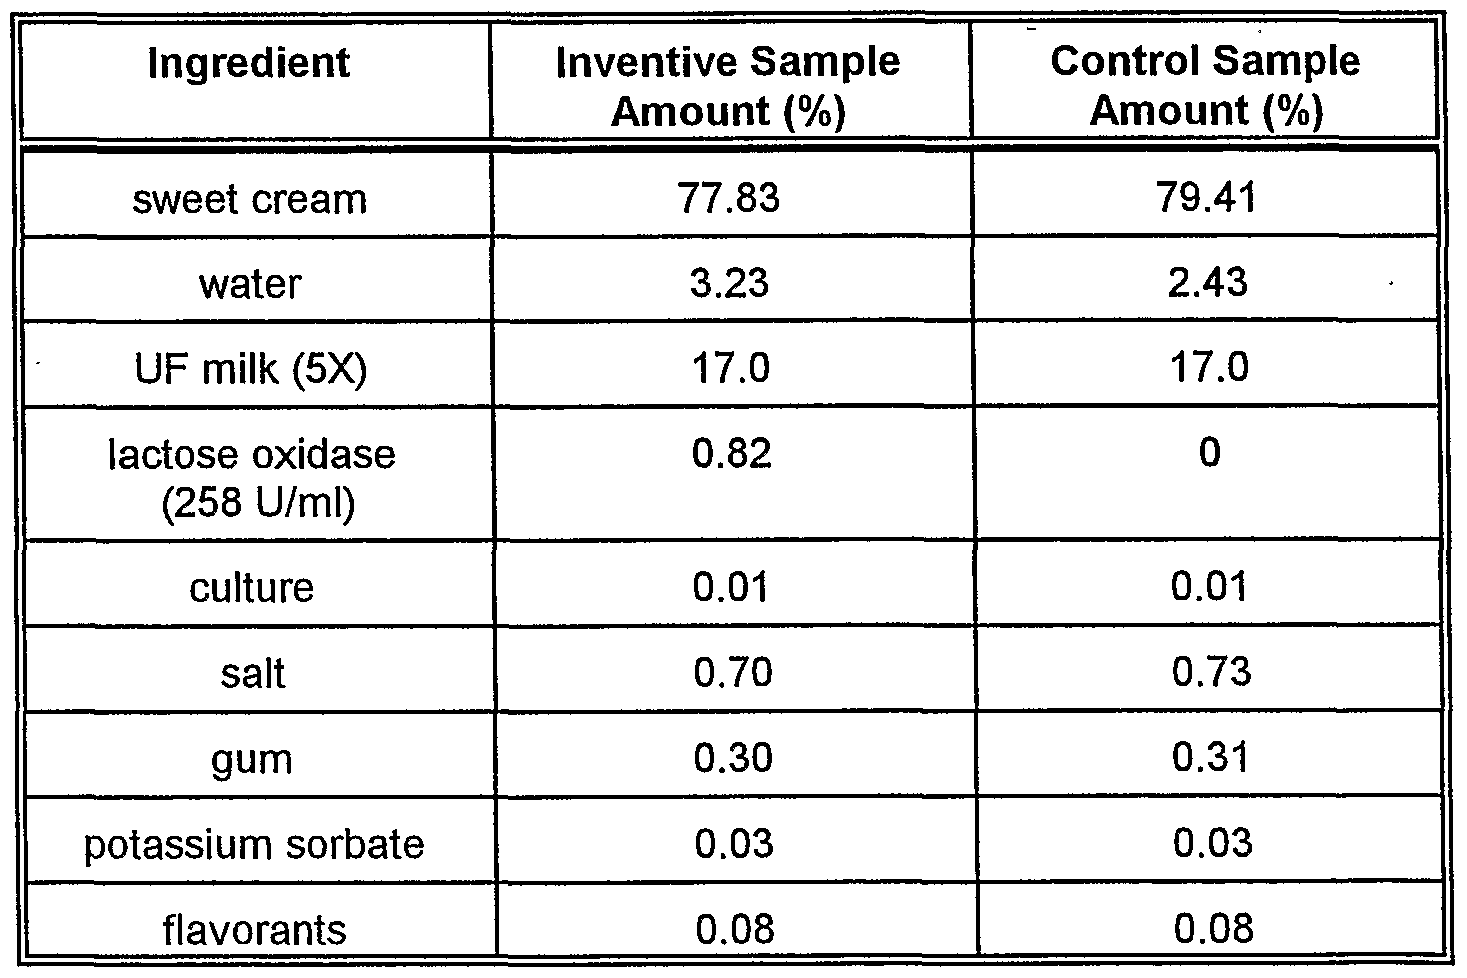 Ep1416803a1 process for manufacturing cheeses and other dairy figure imgf0000250001 nvjuhfo Choice Image